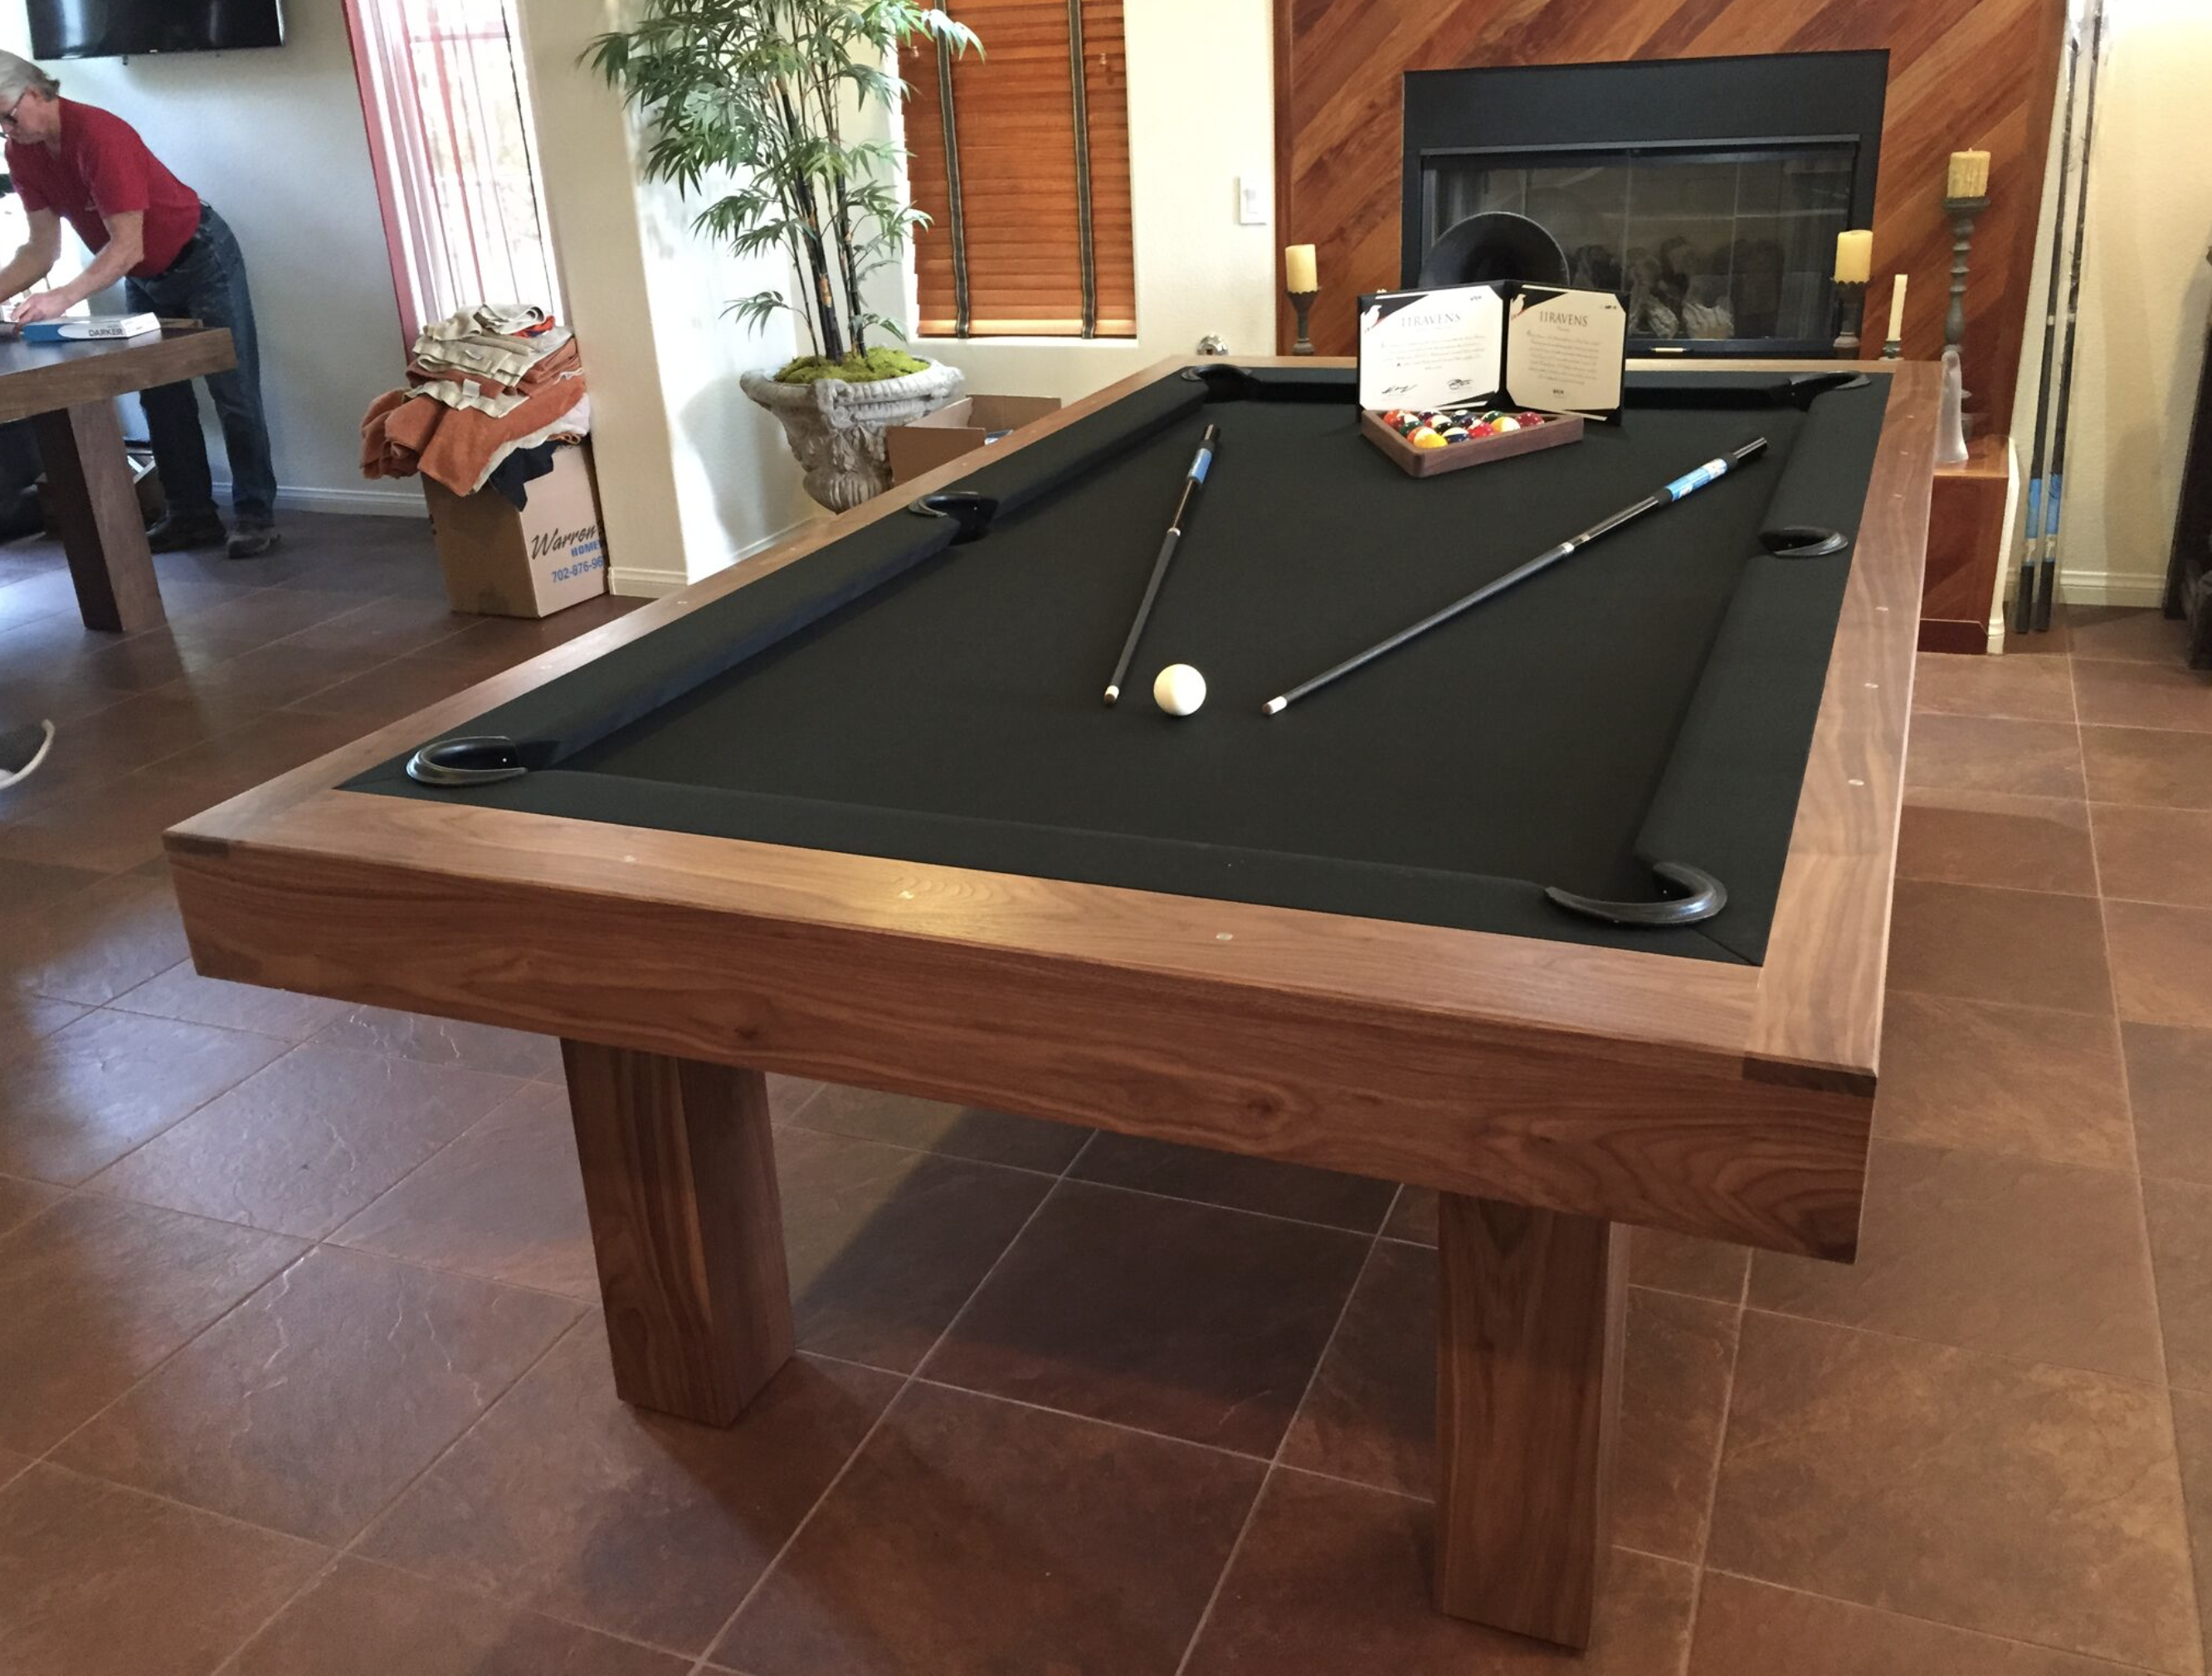 This Signature Design Is A Masterpiece Of Simplicity The Clean Lines And Effortless Minimalism Emanate A Panache That I Modern Pool Table Pool Table Billiards